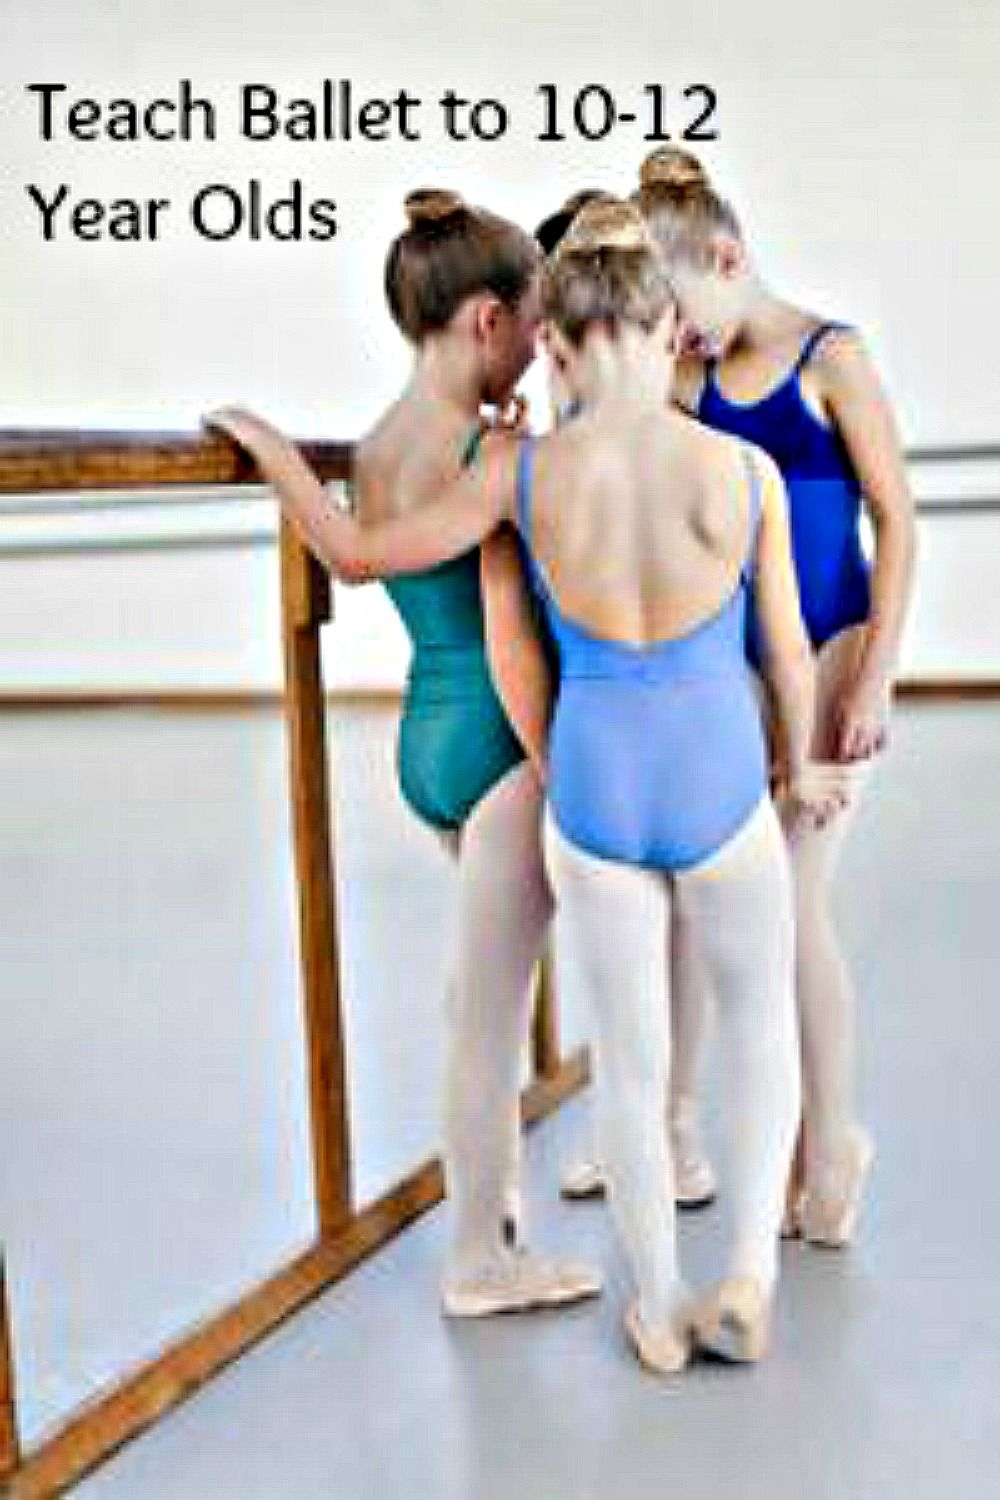 ee7b432c4526 Here are some great tips for teaching ballet to 10-12 year olds ...